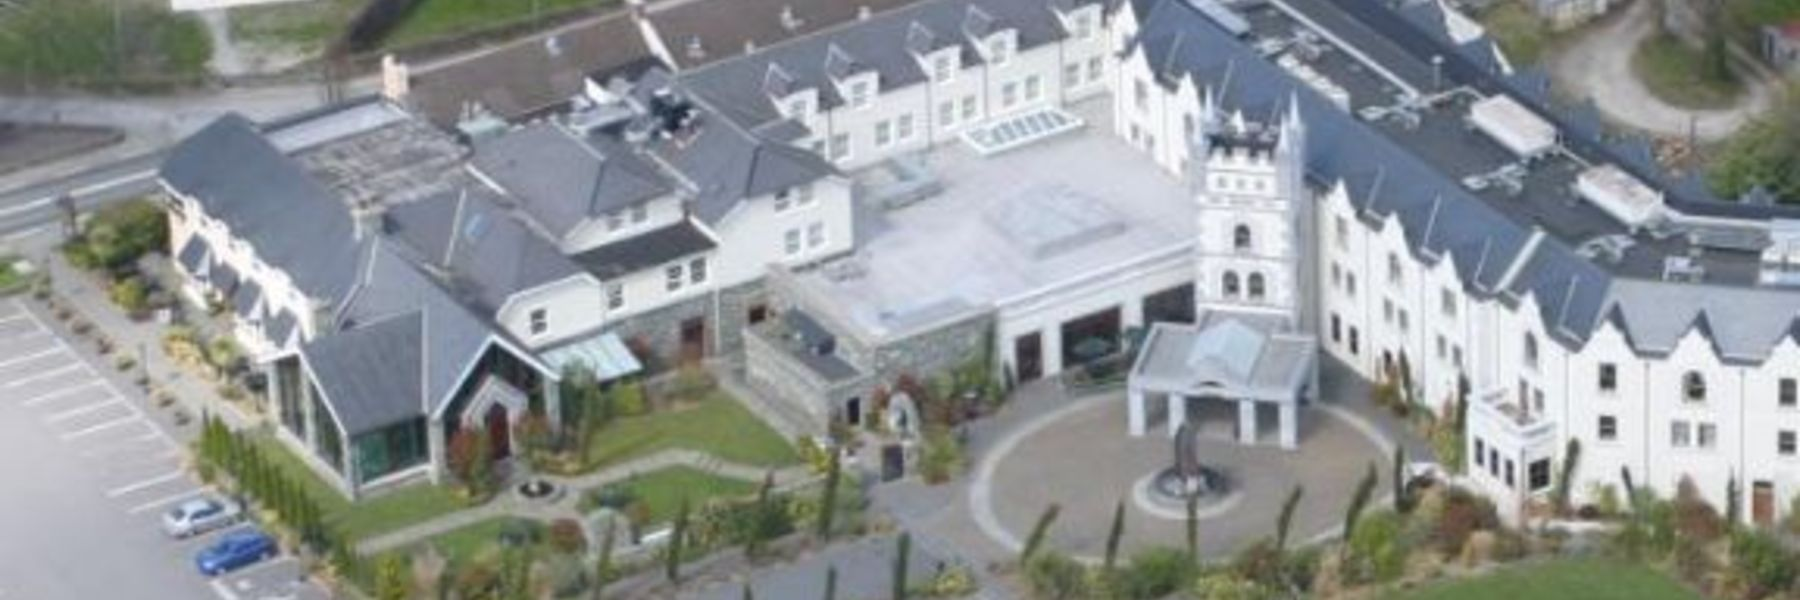 Golf Vacation Package - Muckross Park Hotel & Spa